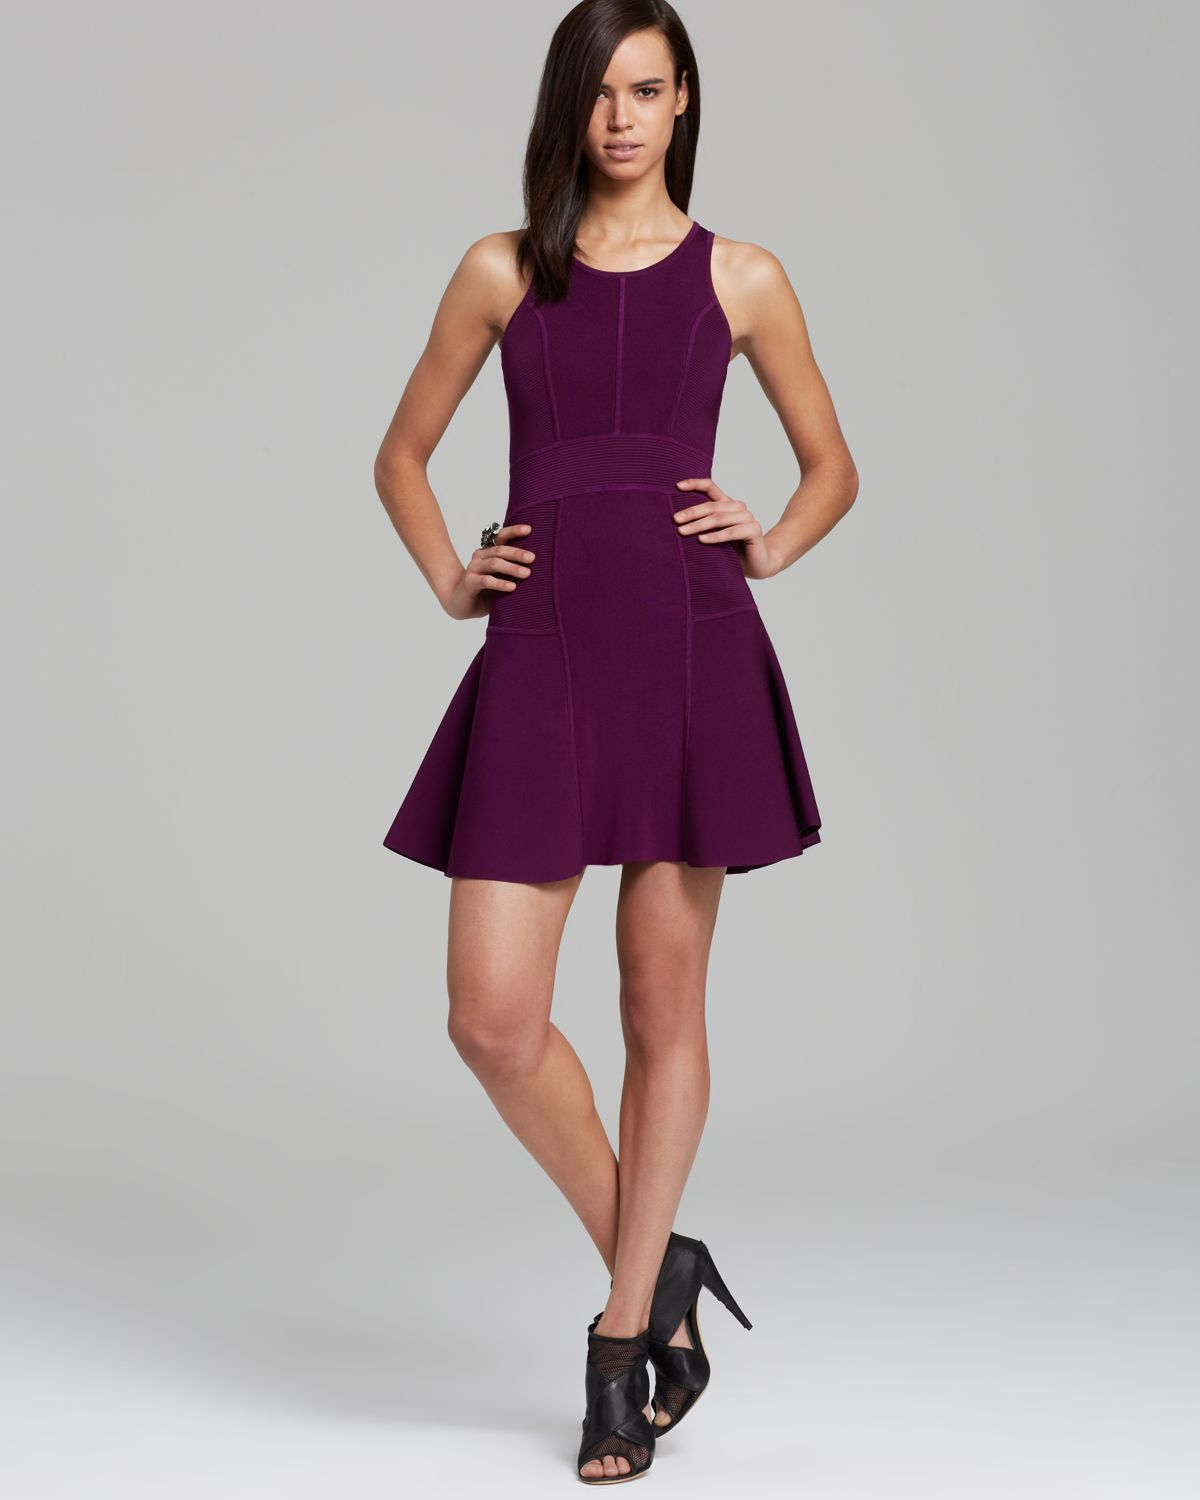 Milly Dress Fit And Flare In Plum Purple Lyst